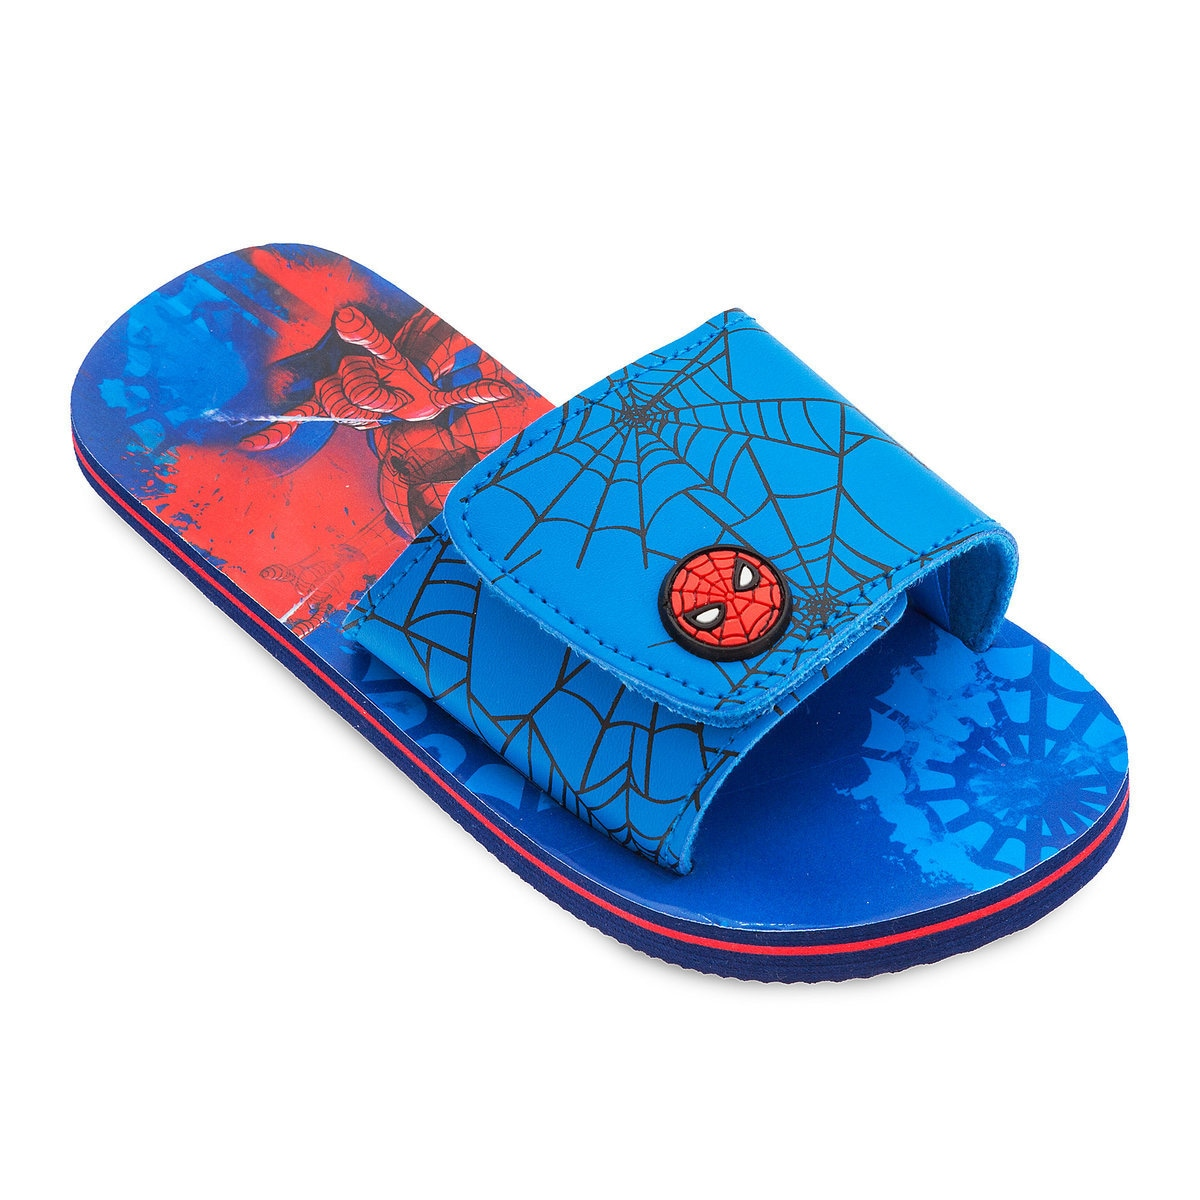 f1ea7c055 Product Image of Spider-Man Sandals for Kids   1